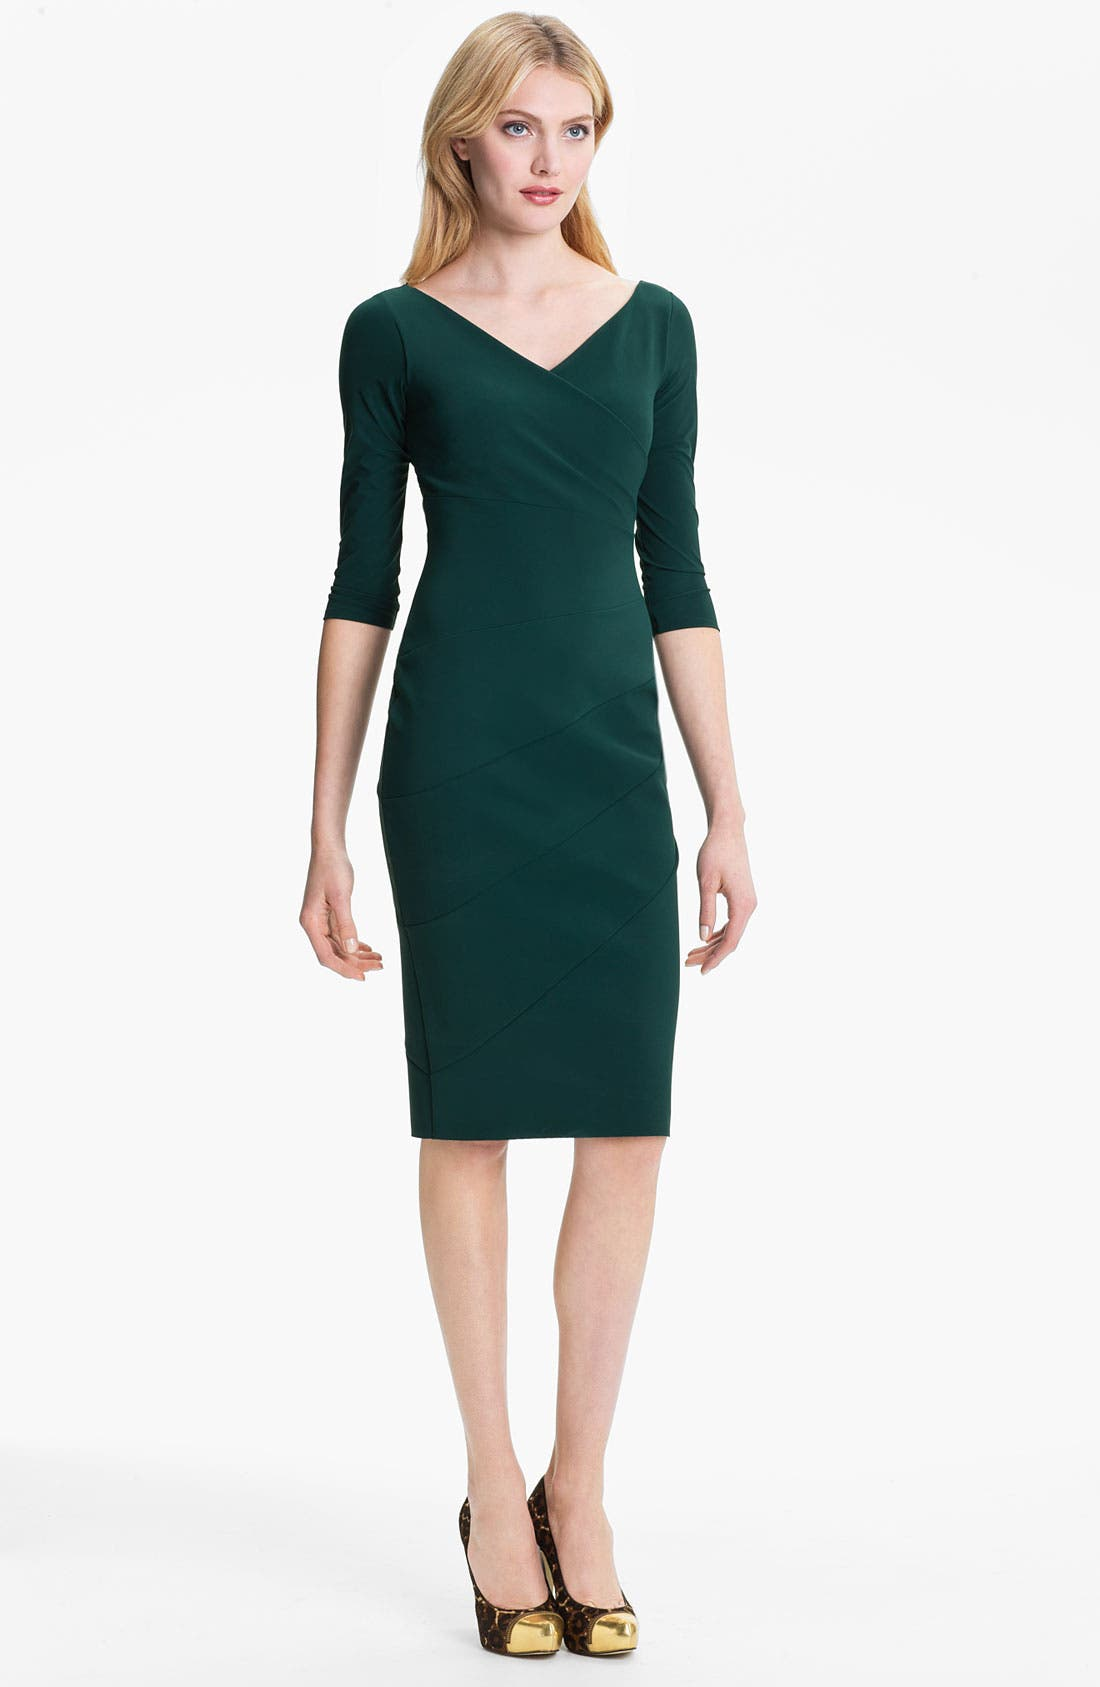 Alternate Image 1 Selected - La Petite Robe by Chiara Boni V-Neck Seam Detail Sheath Dress